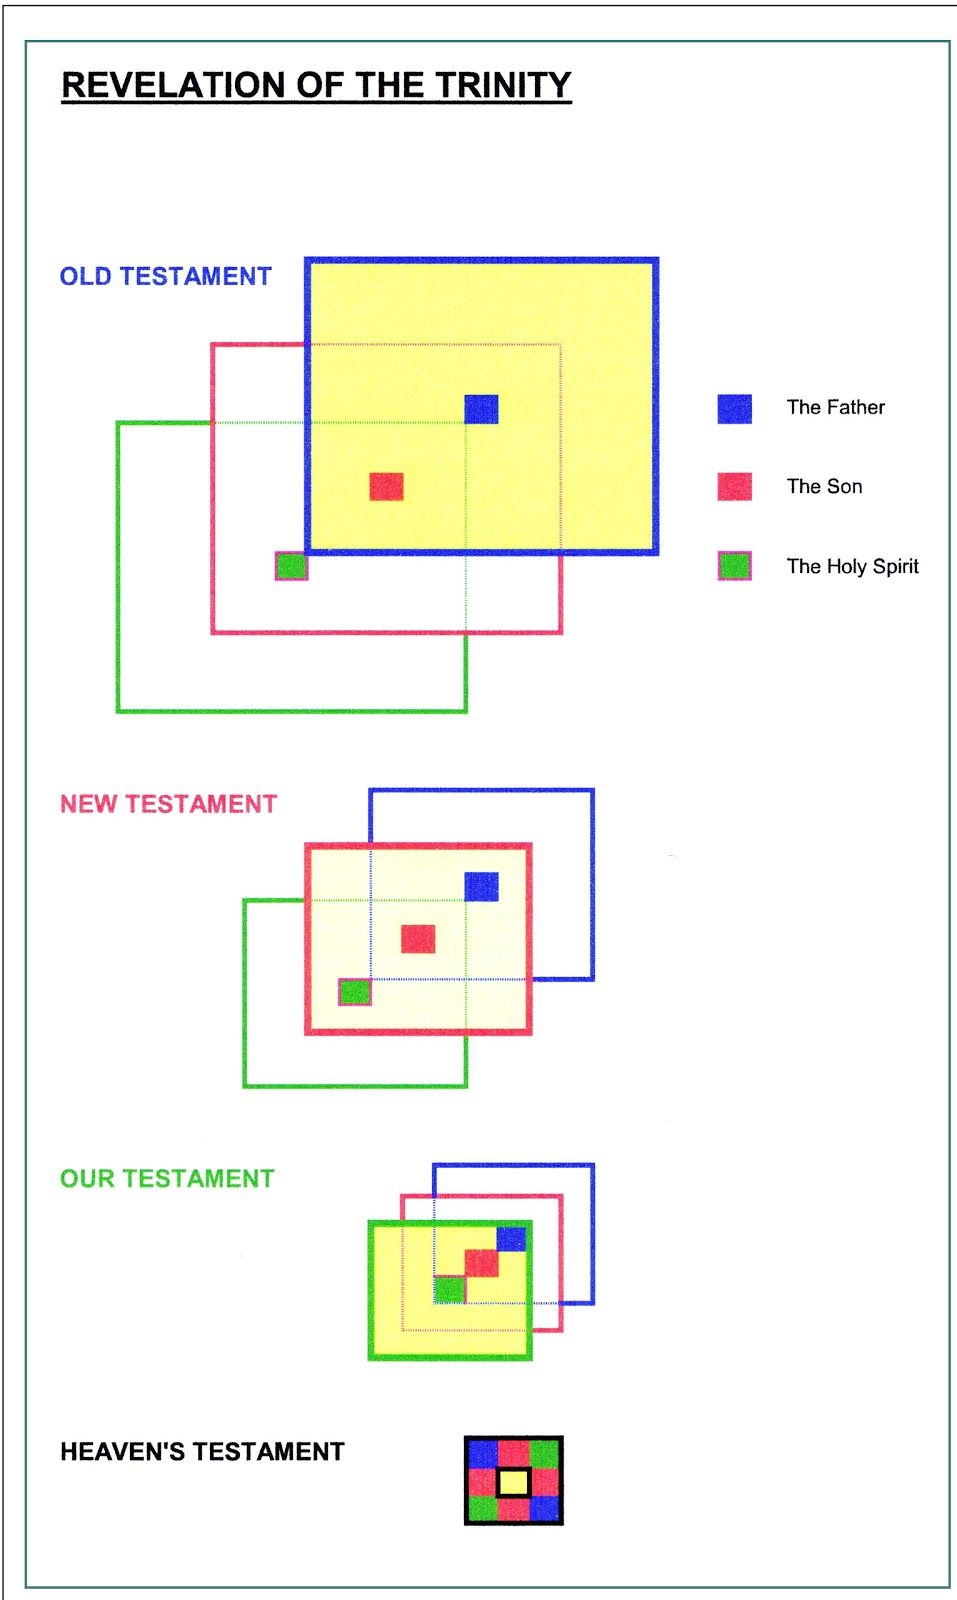 Dom Donald's Blog: Blessed Trinity - chart and commentary by